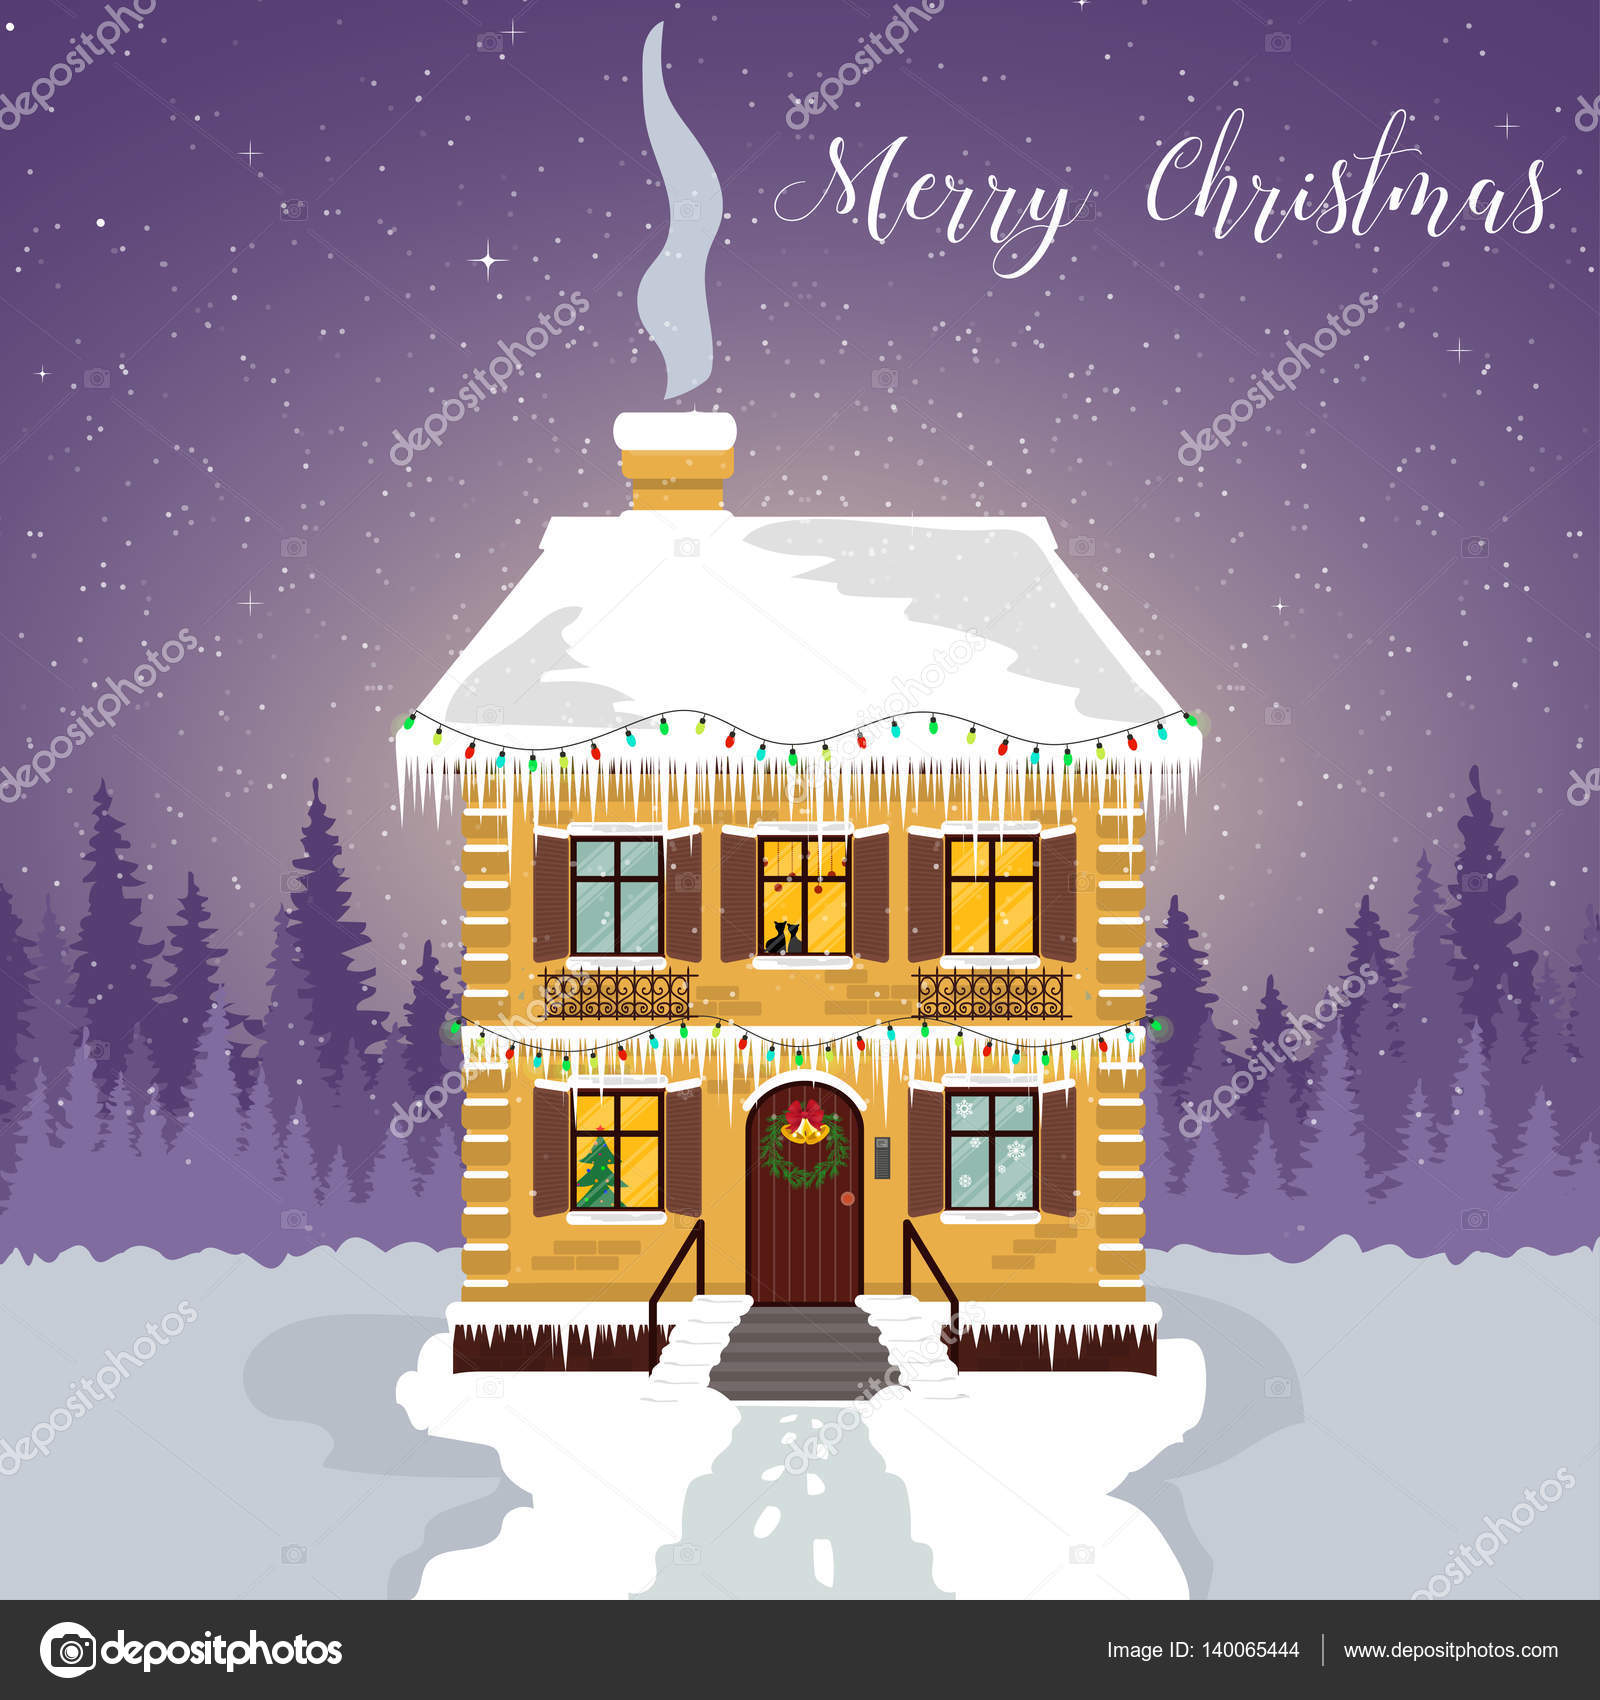 Winter Night Decorated House With Garlands And Icicles Christmas Card With A Silhouette Of The Forest And The Starry Sky Stock Vector C Bukharina 140065444